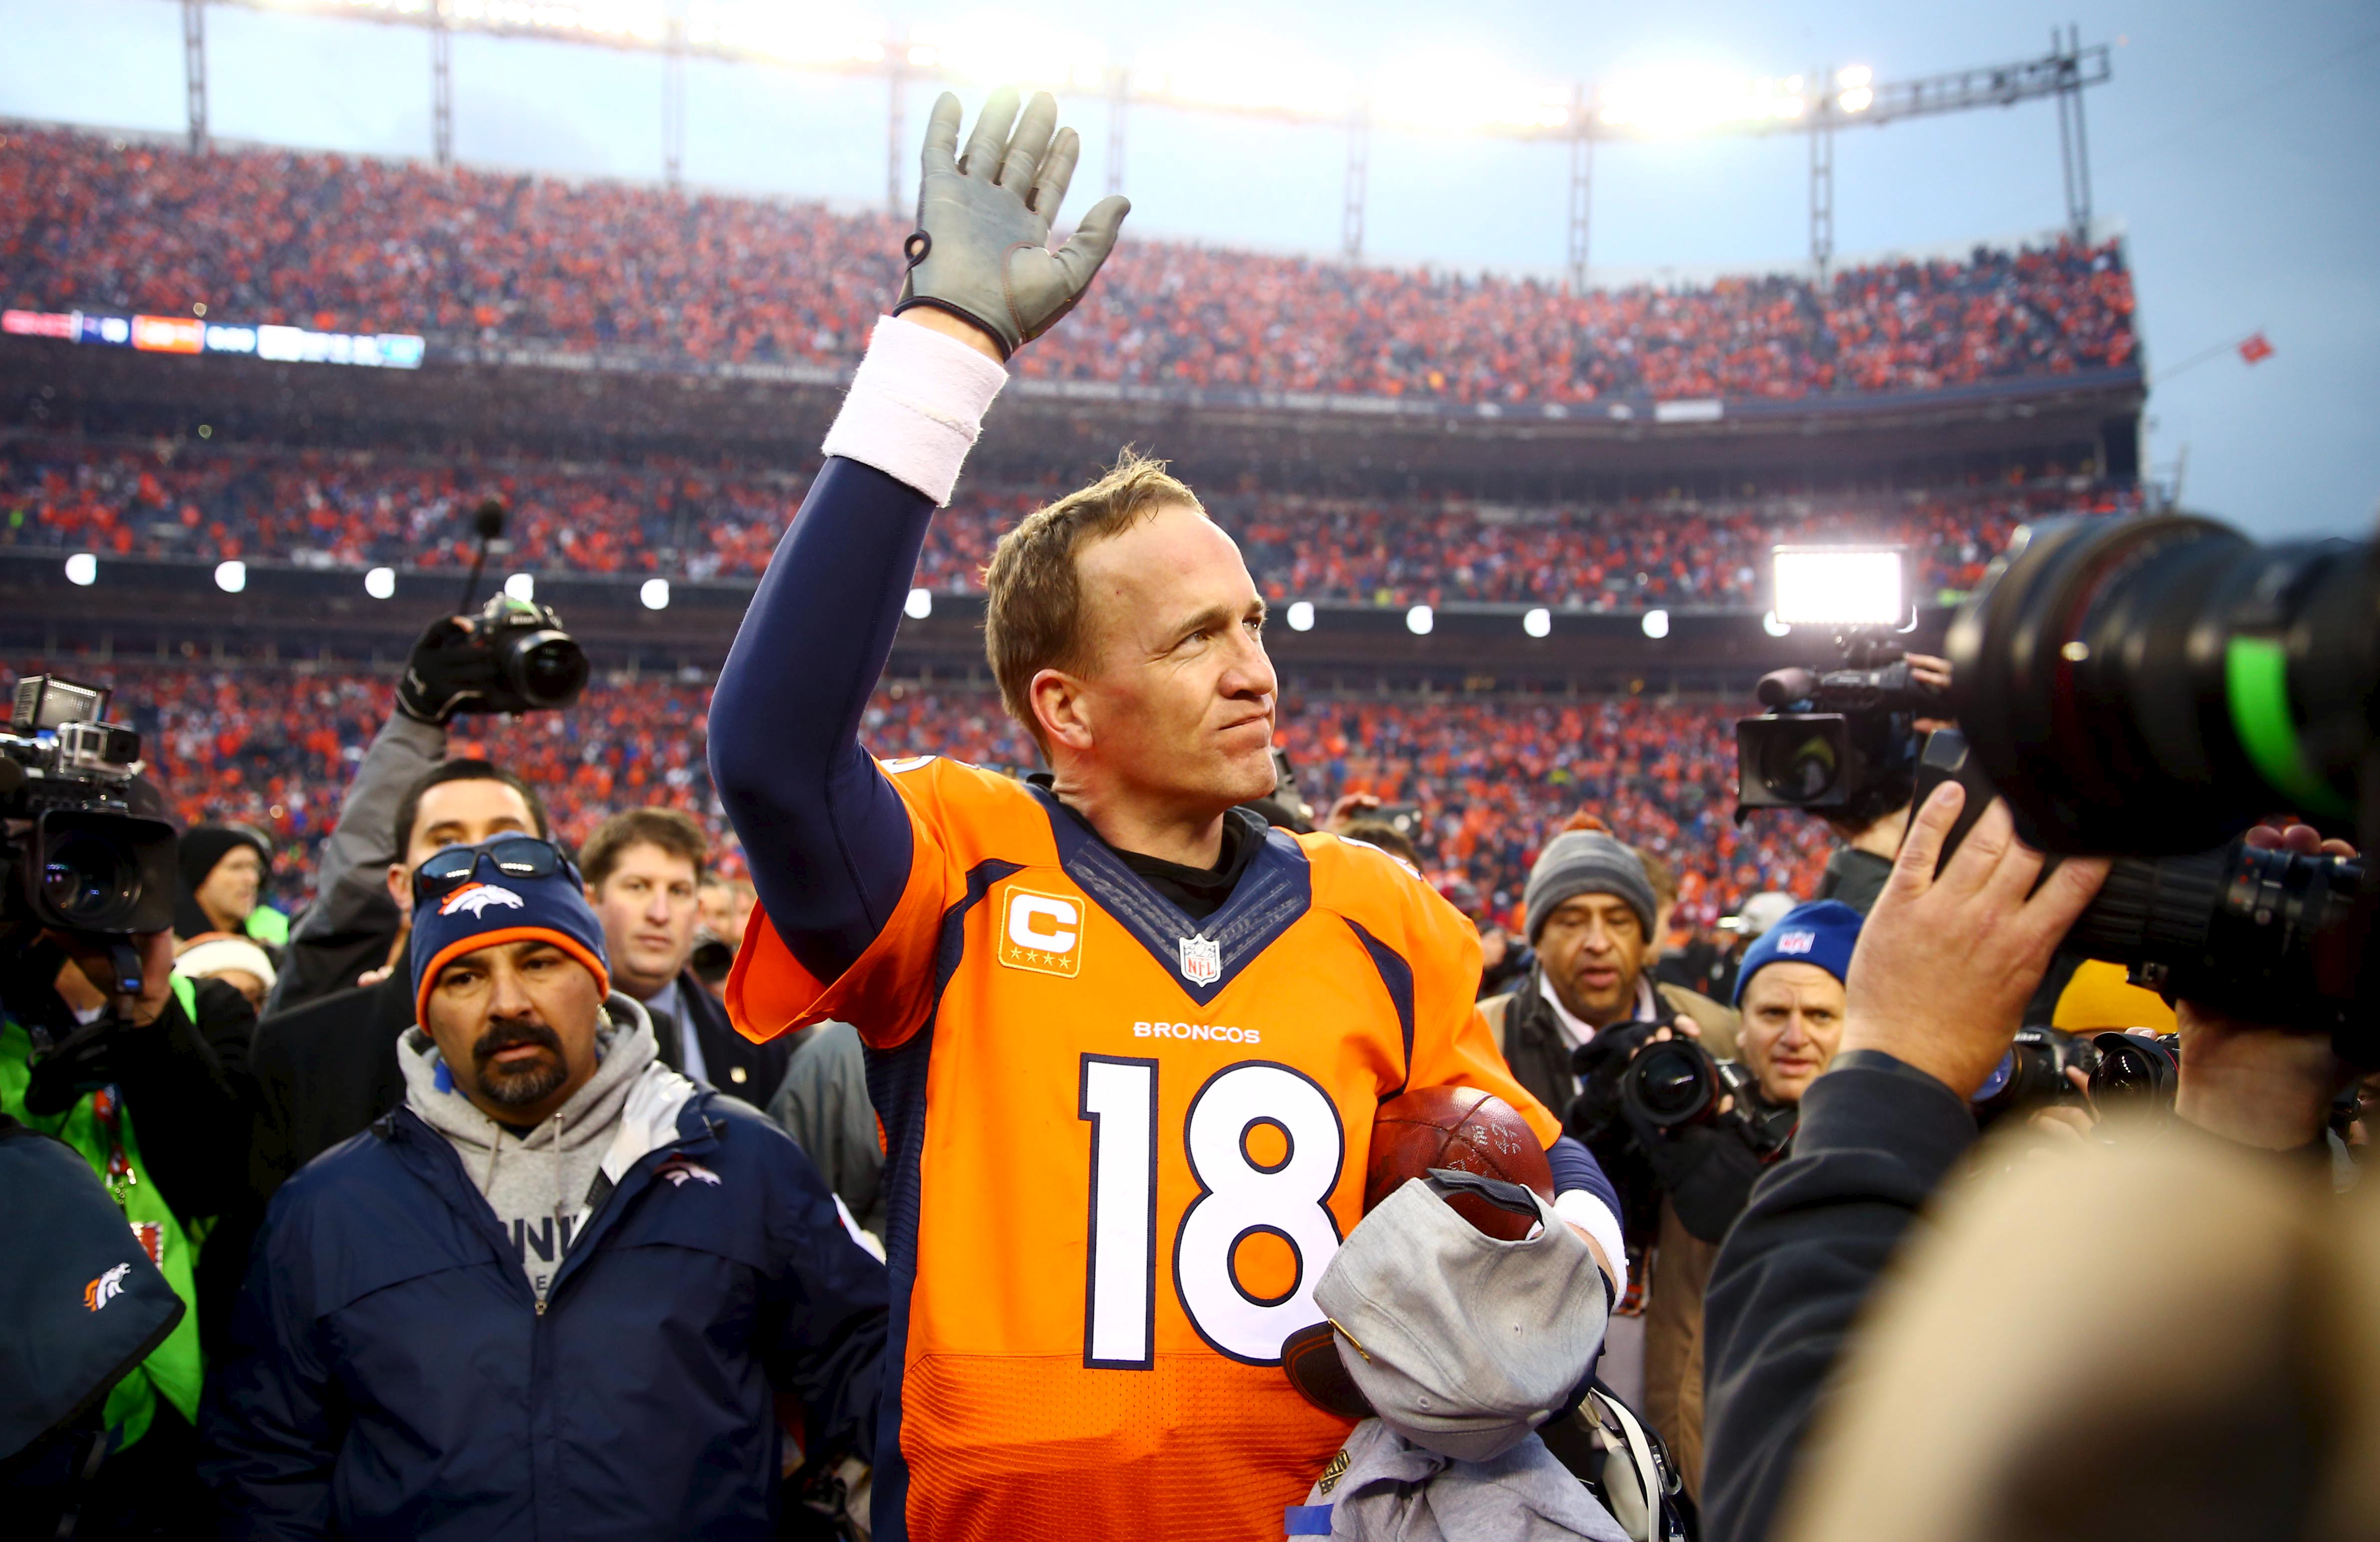 Denver Broncos quarterback Peyton Manning waves to the crowd after the AFC Championship football game against the New England Patriots at Sports Authority Field at Mile High in Denver, CO on Jan 24, 2016.